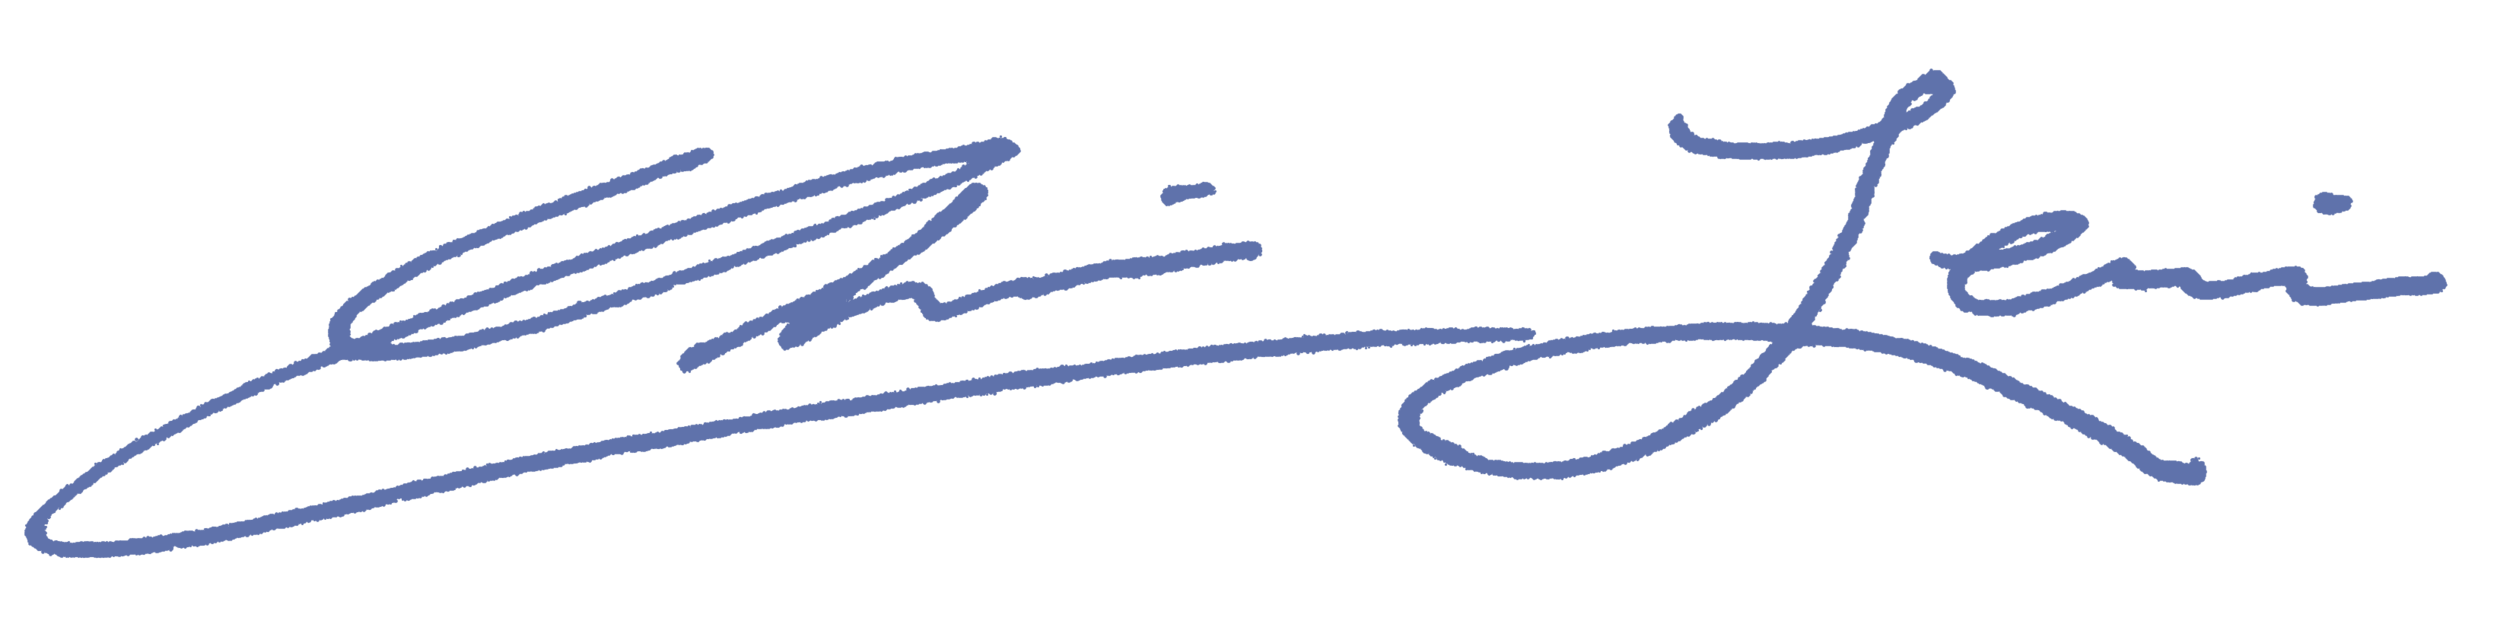 CL_signature_purple_transparent.png